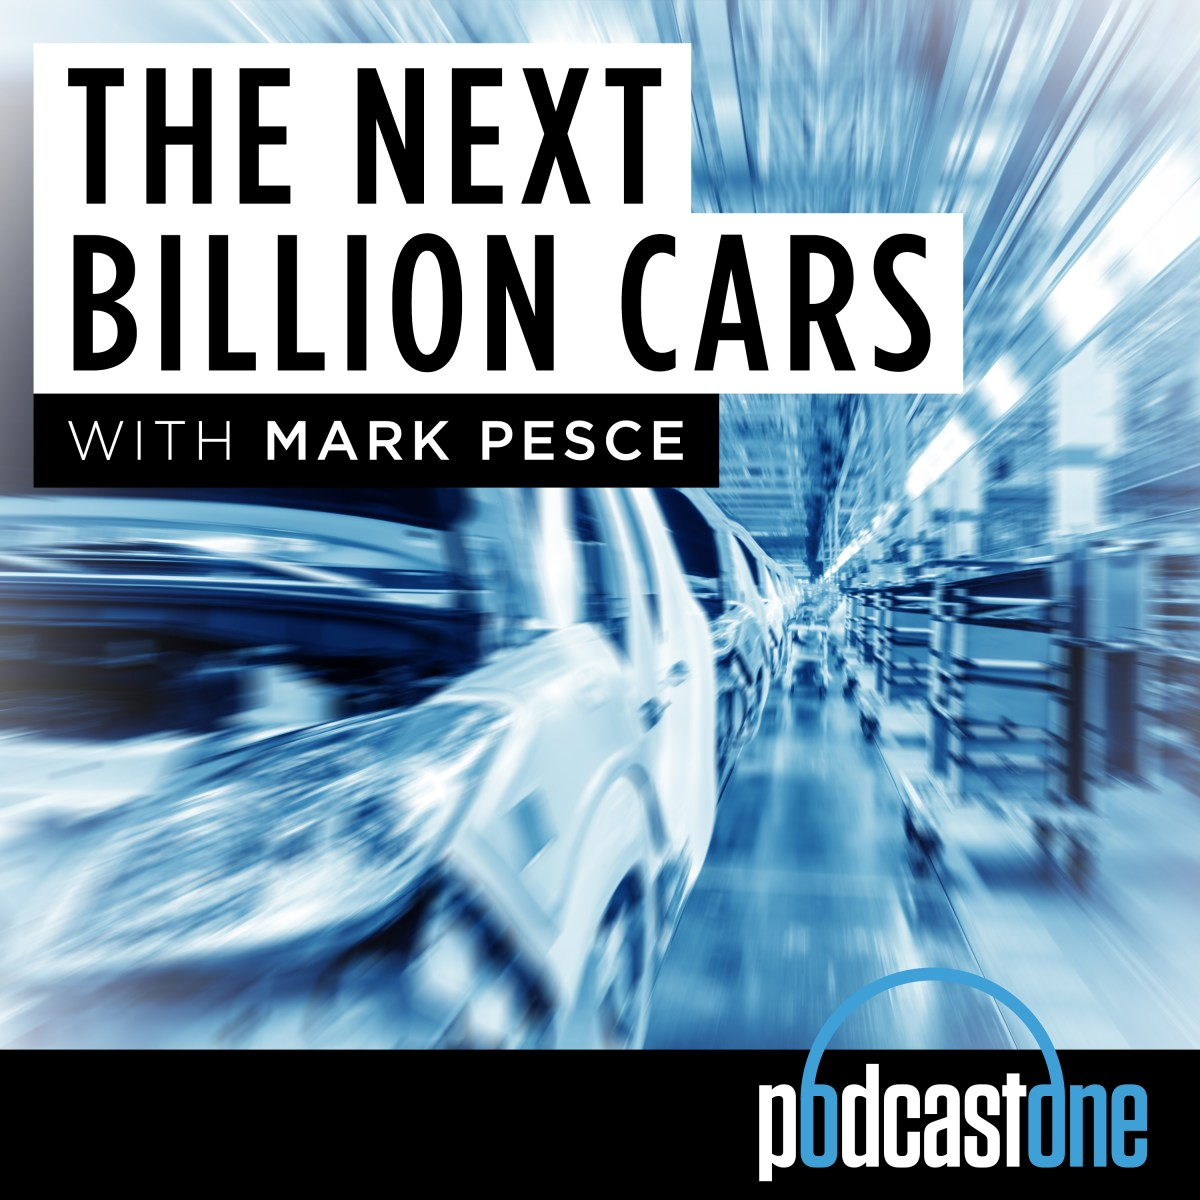 THE NEXT BILLION CARS Episode 3: The Next Billion Volts